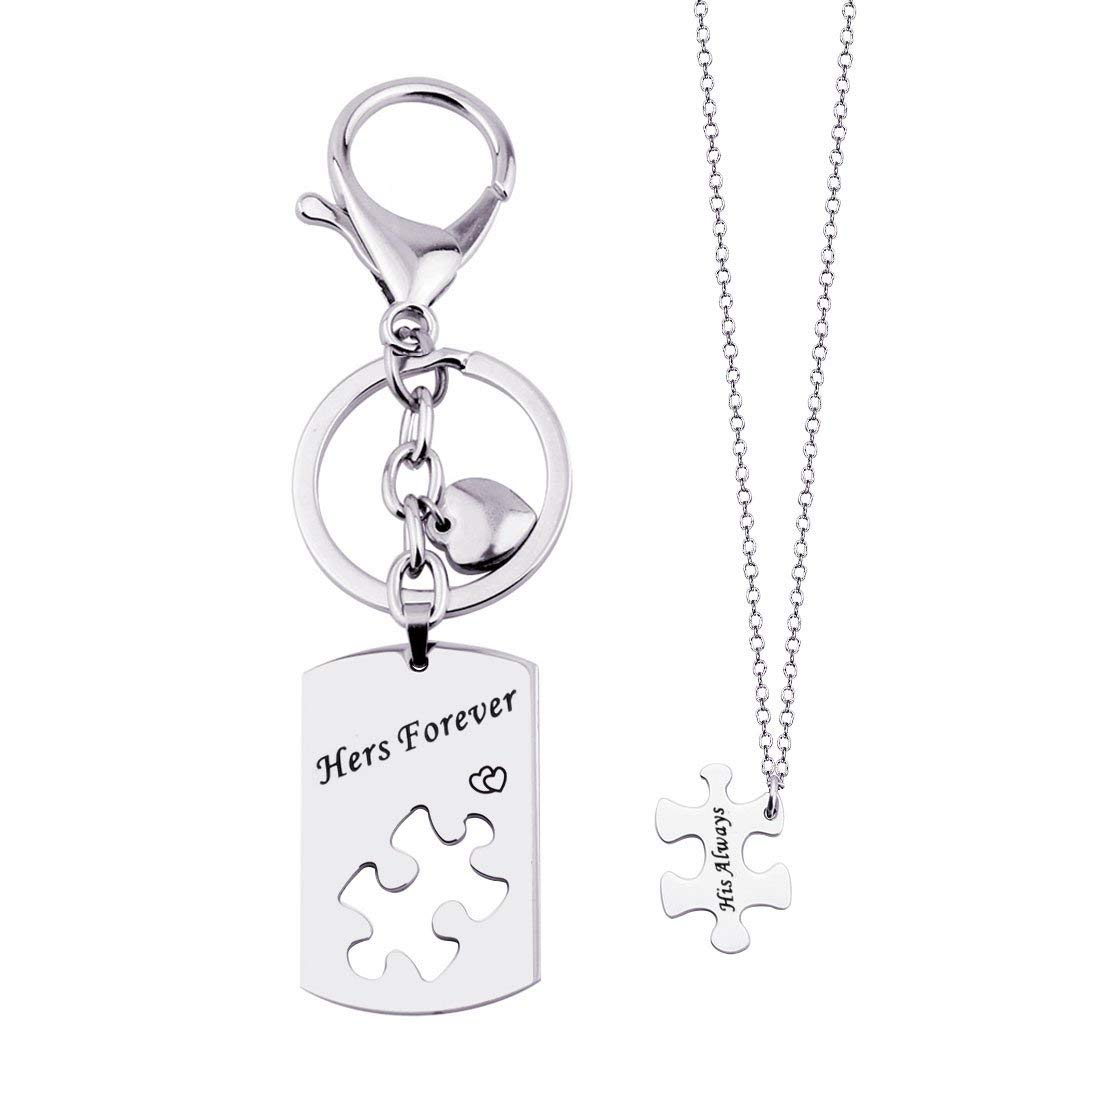 2719aefe07 Get Quotations · His Always Hers Forever Puzzle Piece Necklaces Keychain  Set for Couples Valentine's Day Gift